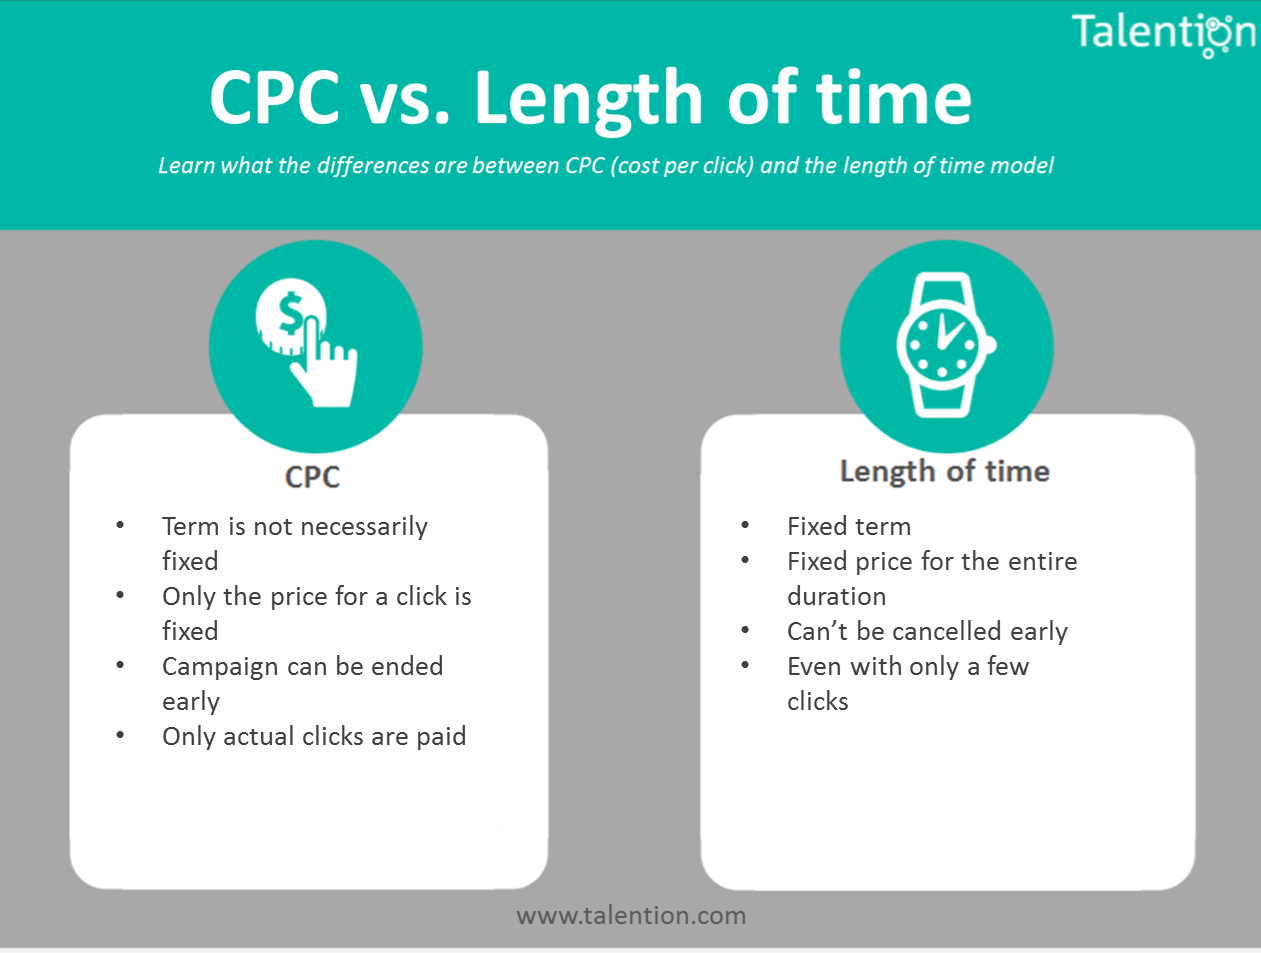 How to Get More Applications: Length of Time Model vs. CPC Model